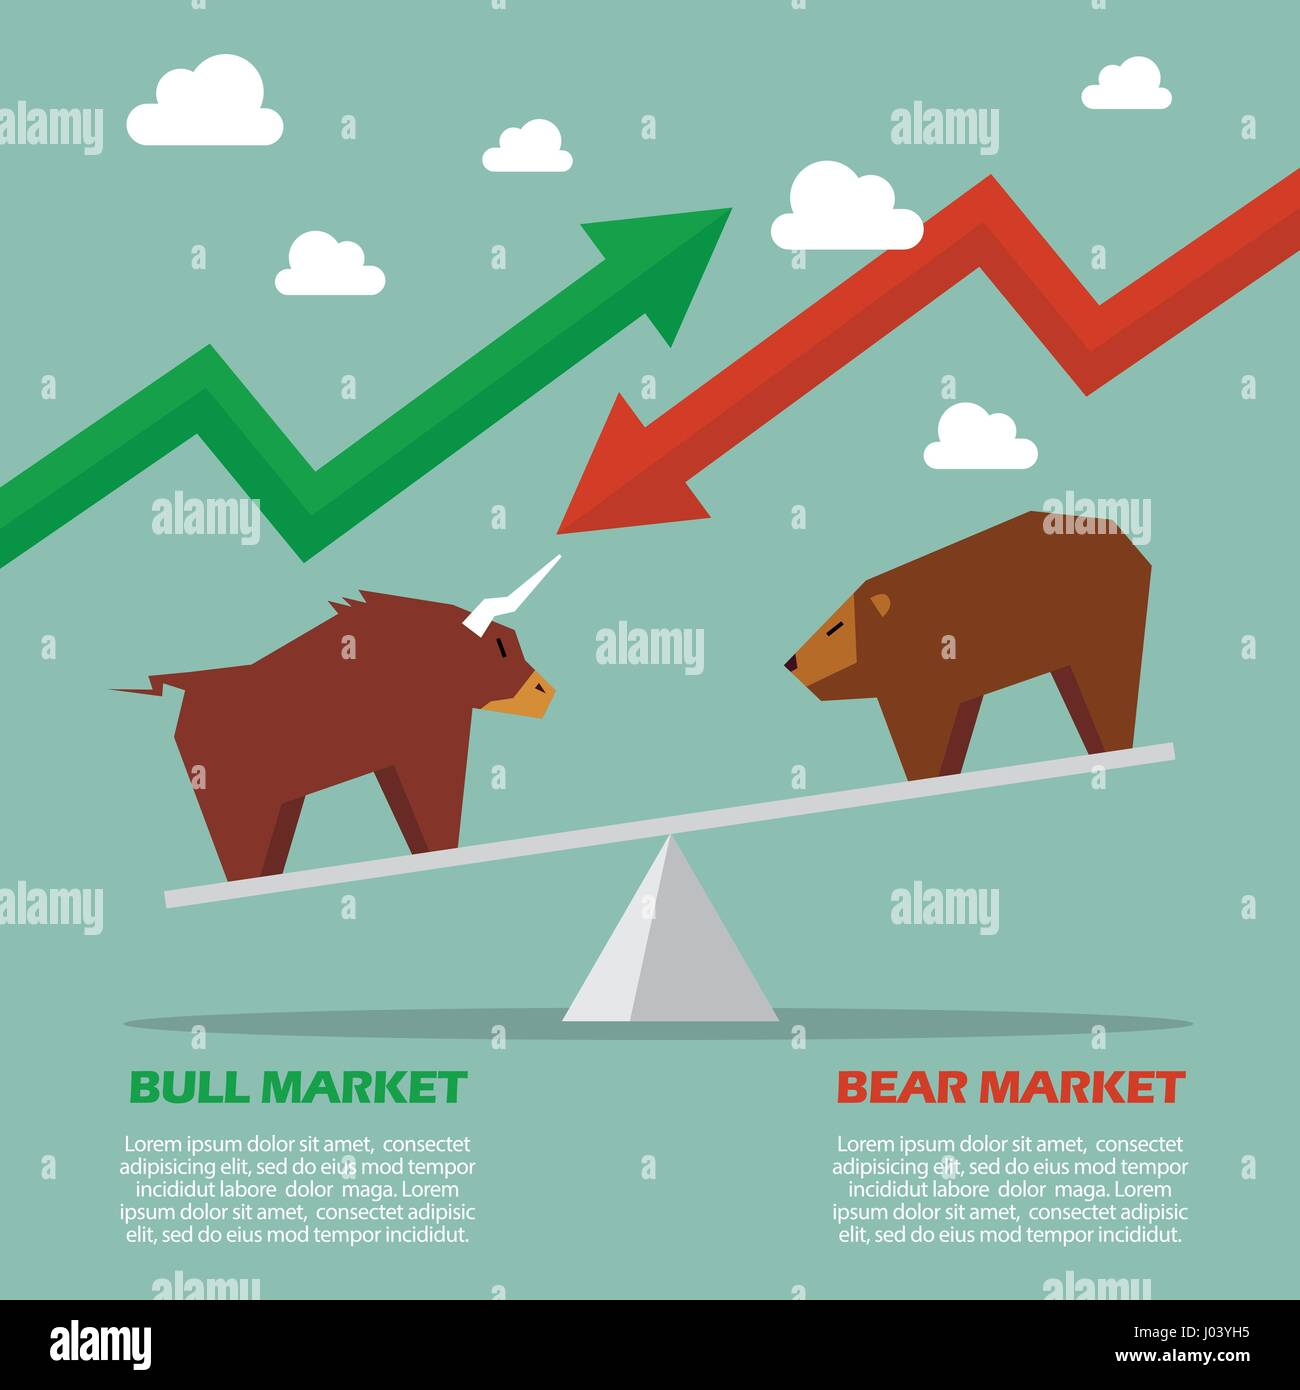 Bull and bear on balance scale infographic symbol of stock market bull and bear on balance scale infographic symbol of stock market biocorpaavc Images